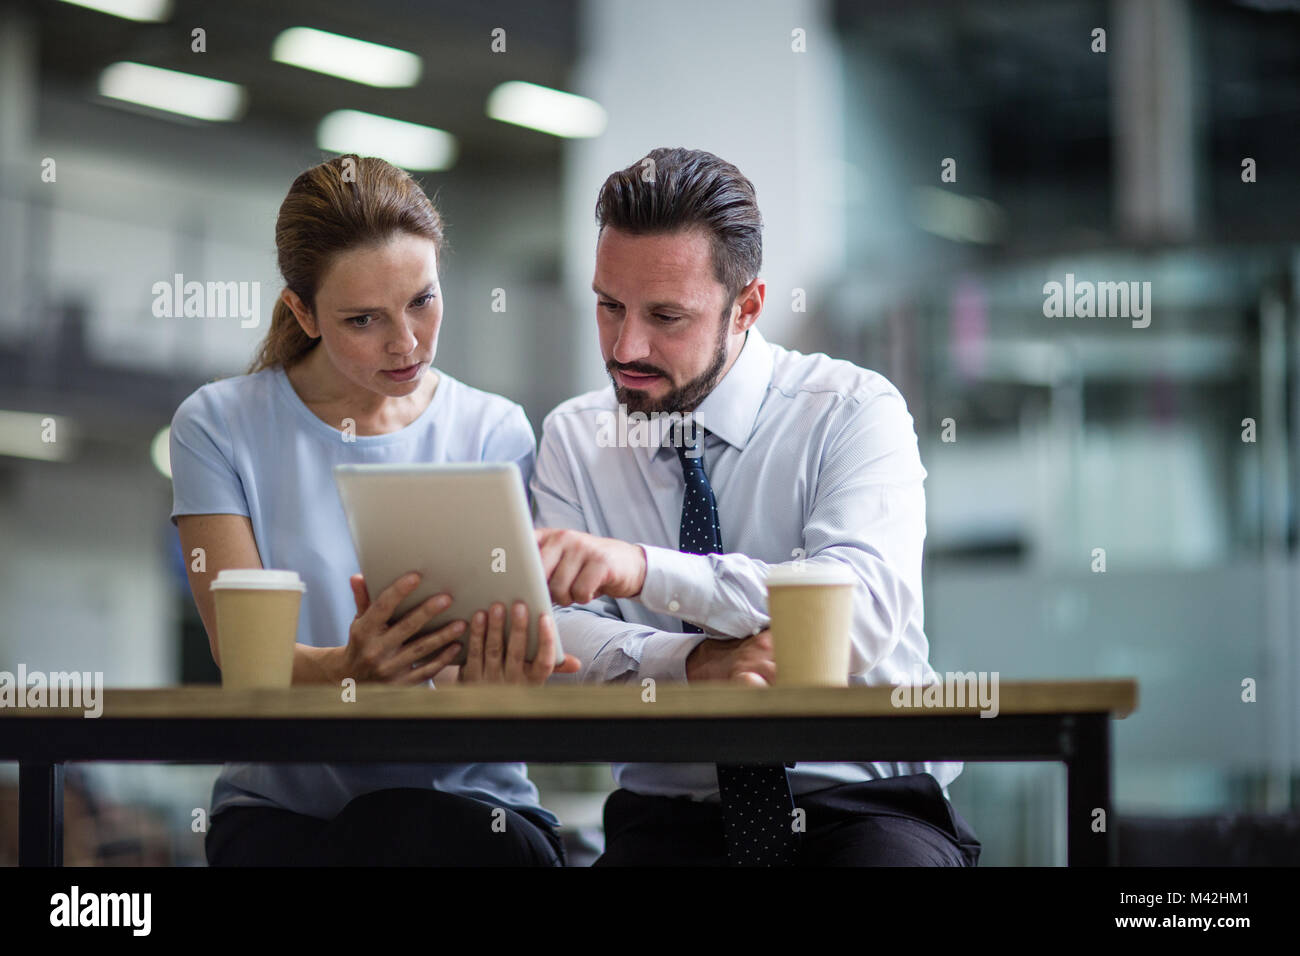 Colleagues using a digital tablet in a meeting - Stock Image